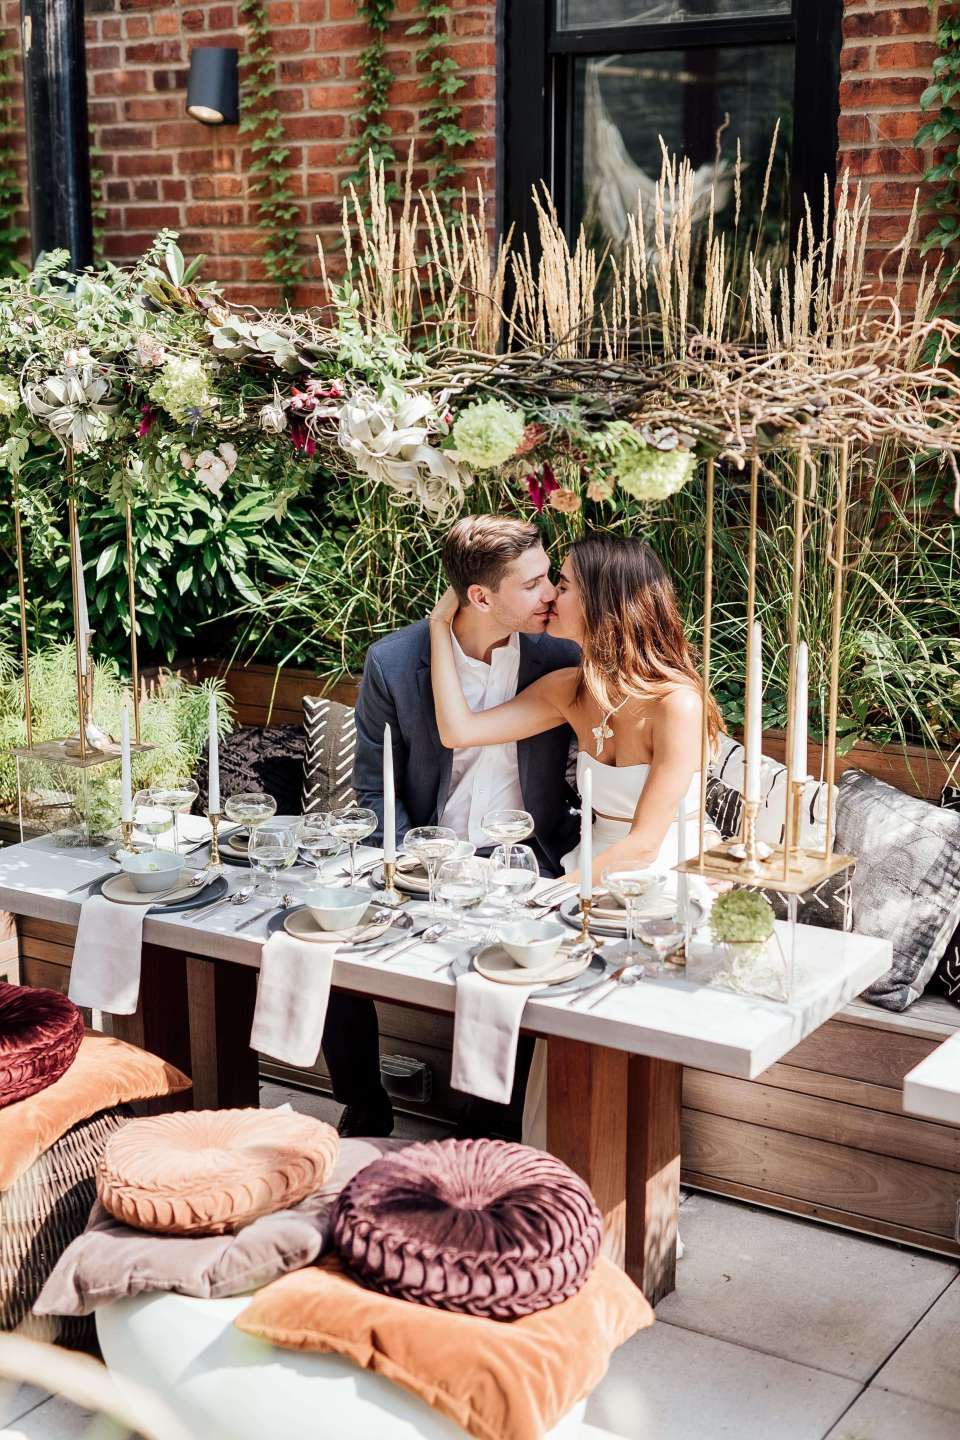 A photo of a beautiful, earthy and ethical wedding decor, featuring warm hues, intimate dining, rustic florals and eco friendly rentals from a sustainable wedding rental company.